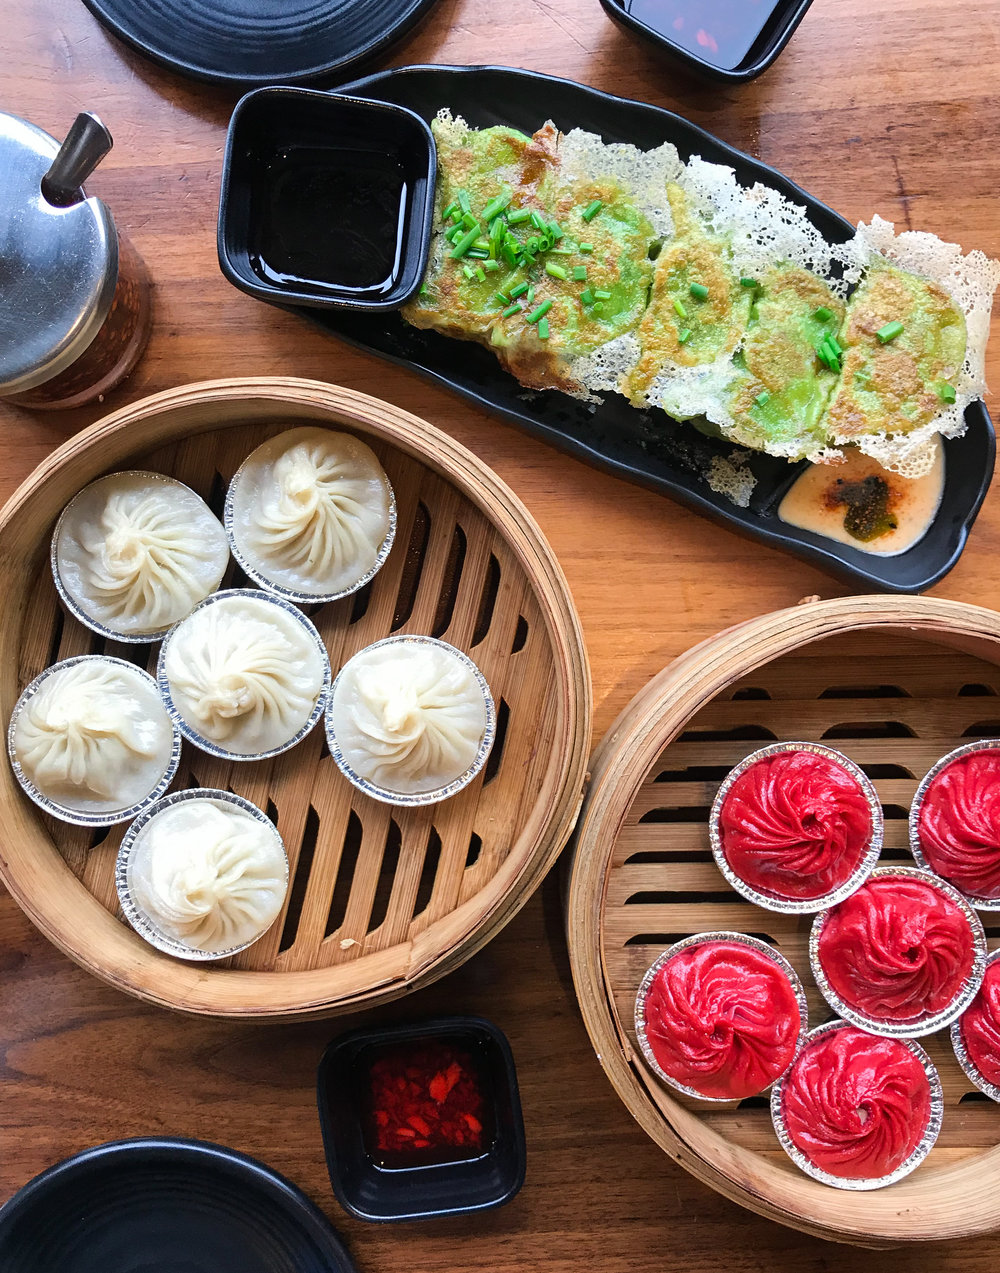 PLATES AND PLATES OF COLORFUL DUMPLINGS